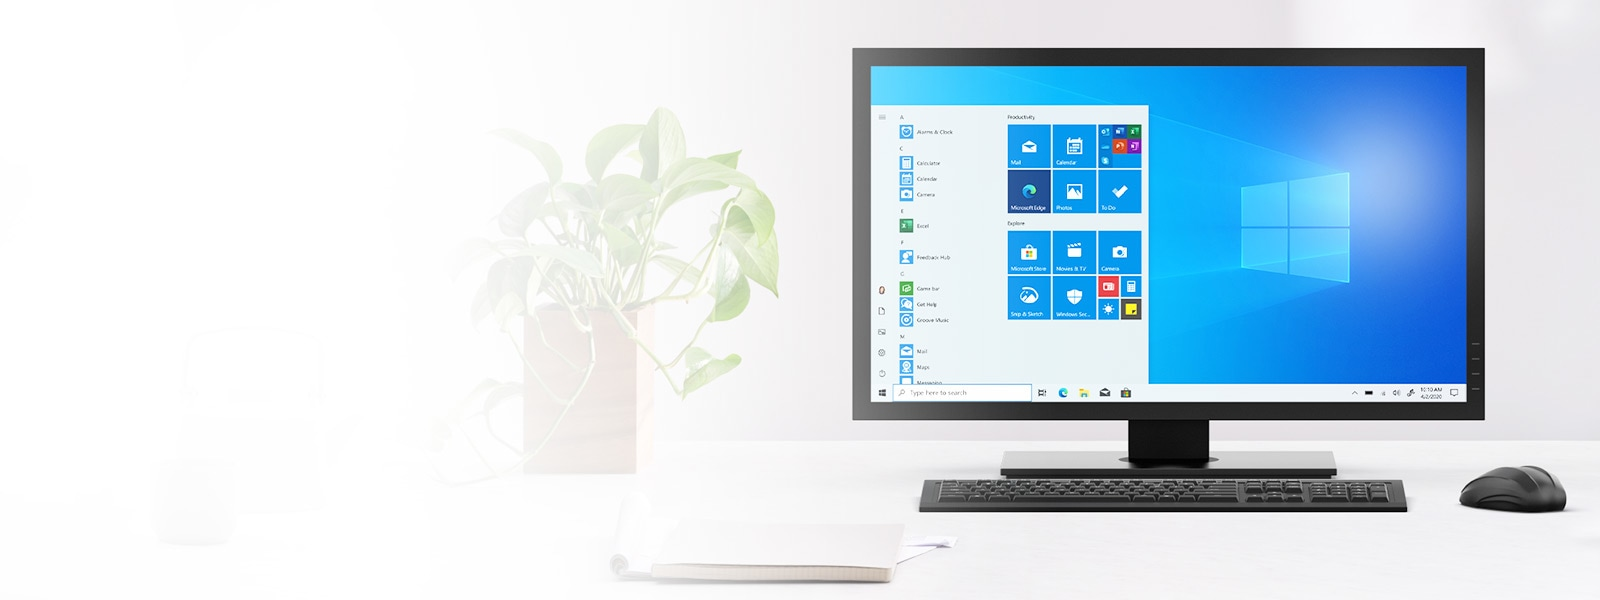 A Windows 10 all in one sits on a desk with a mouse and notepad nearby